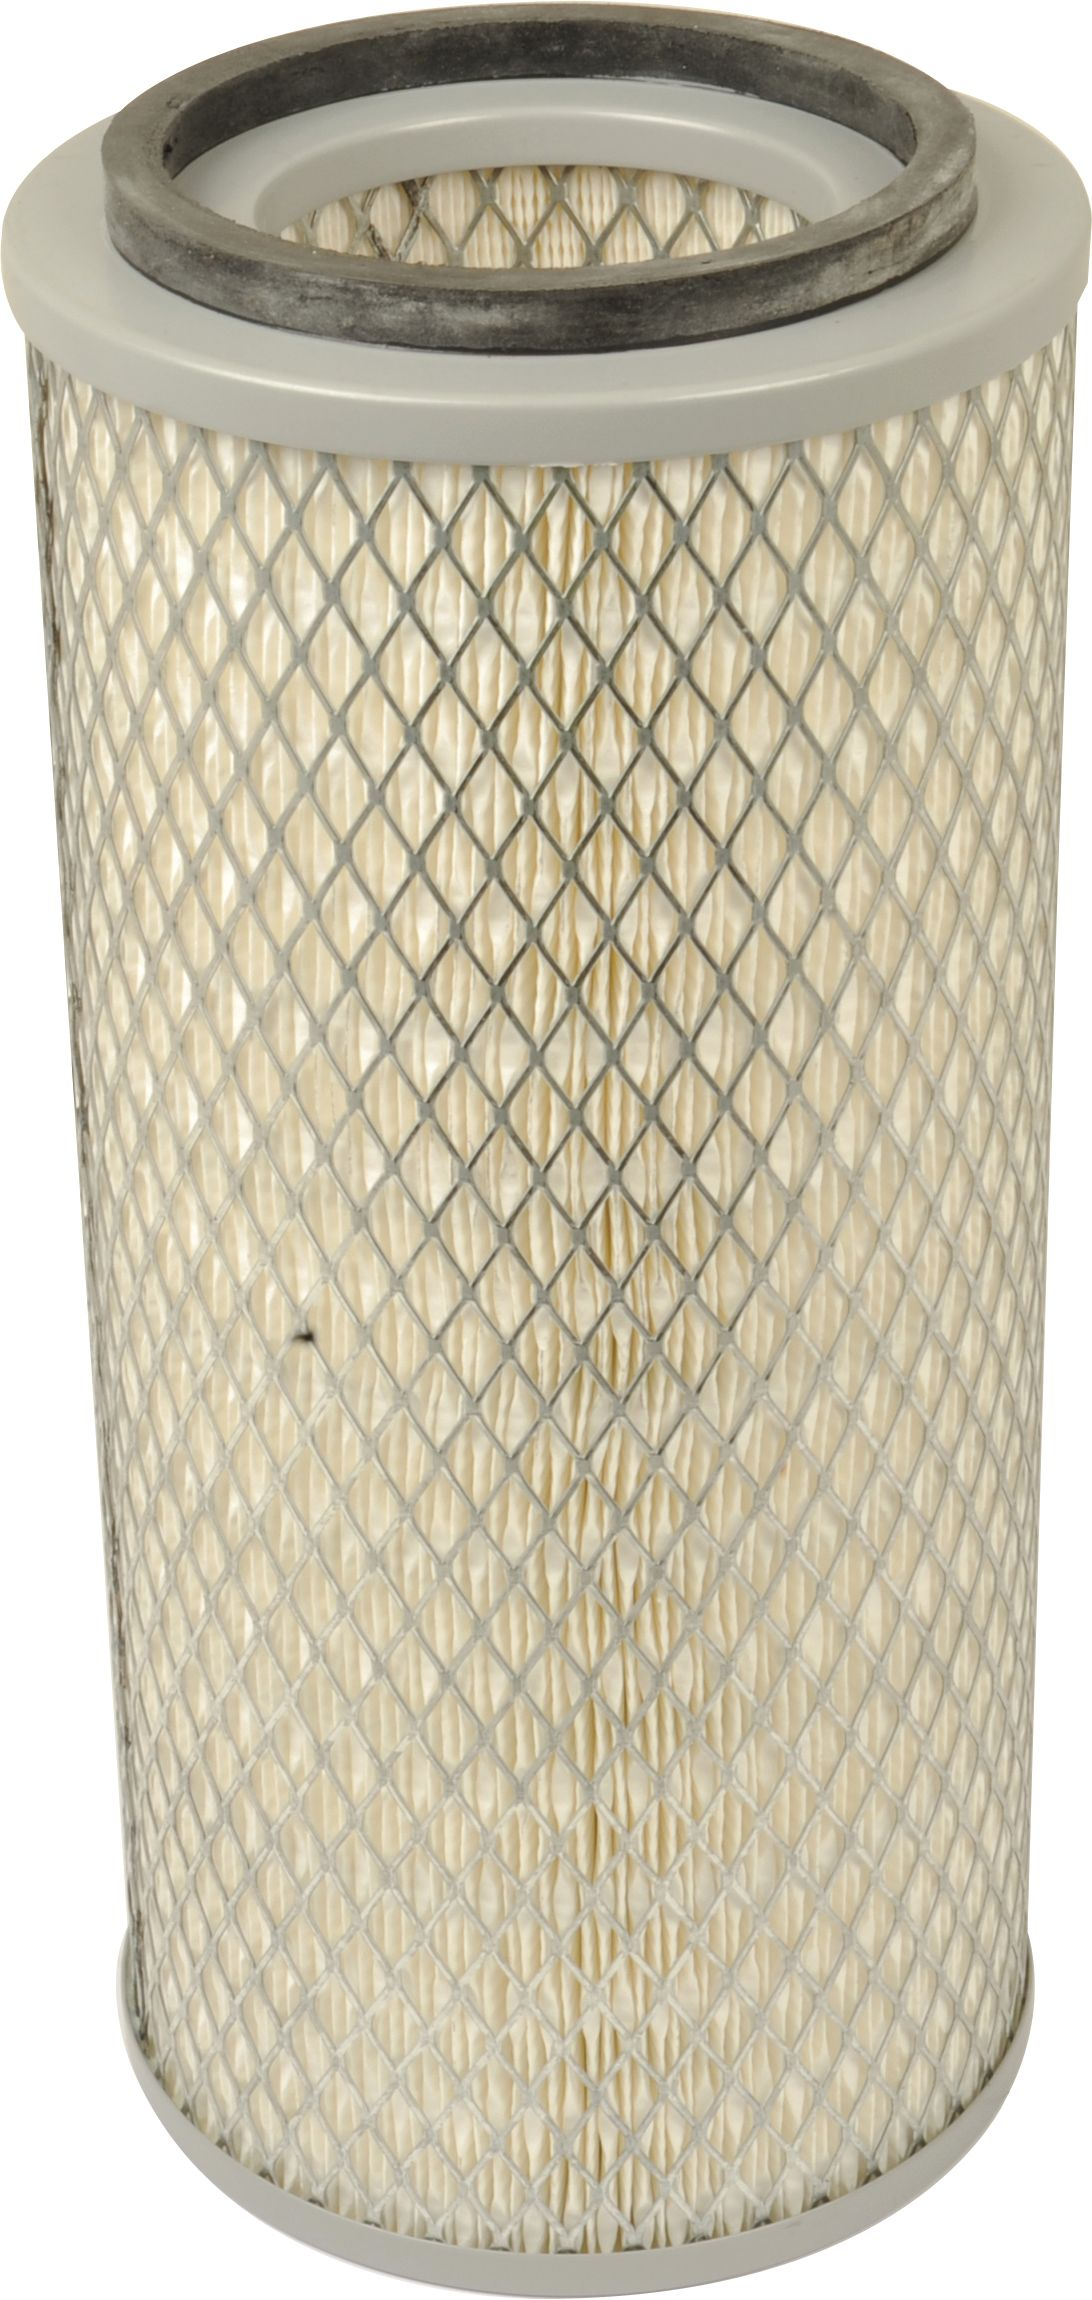 MERCEDES BENZ OUTER AIR FILTER AF4058 108894